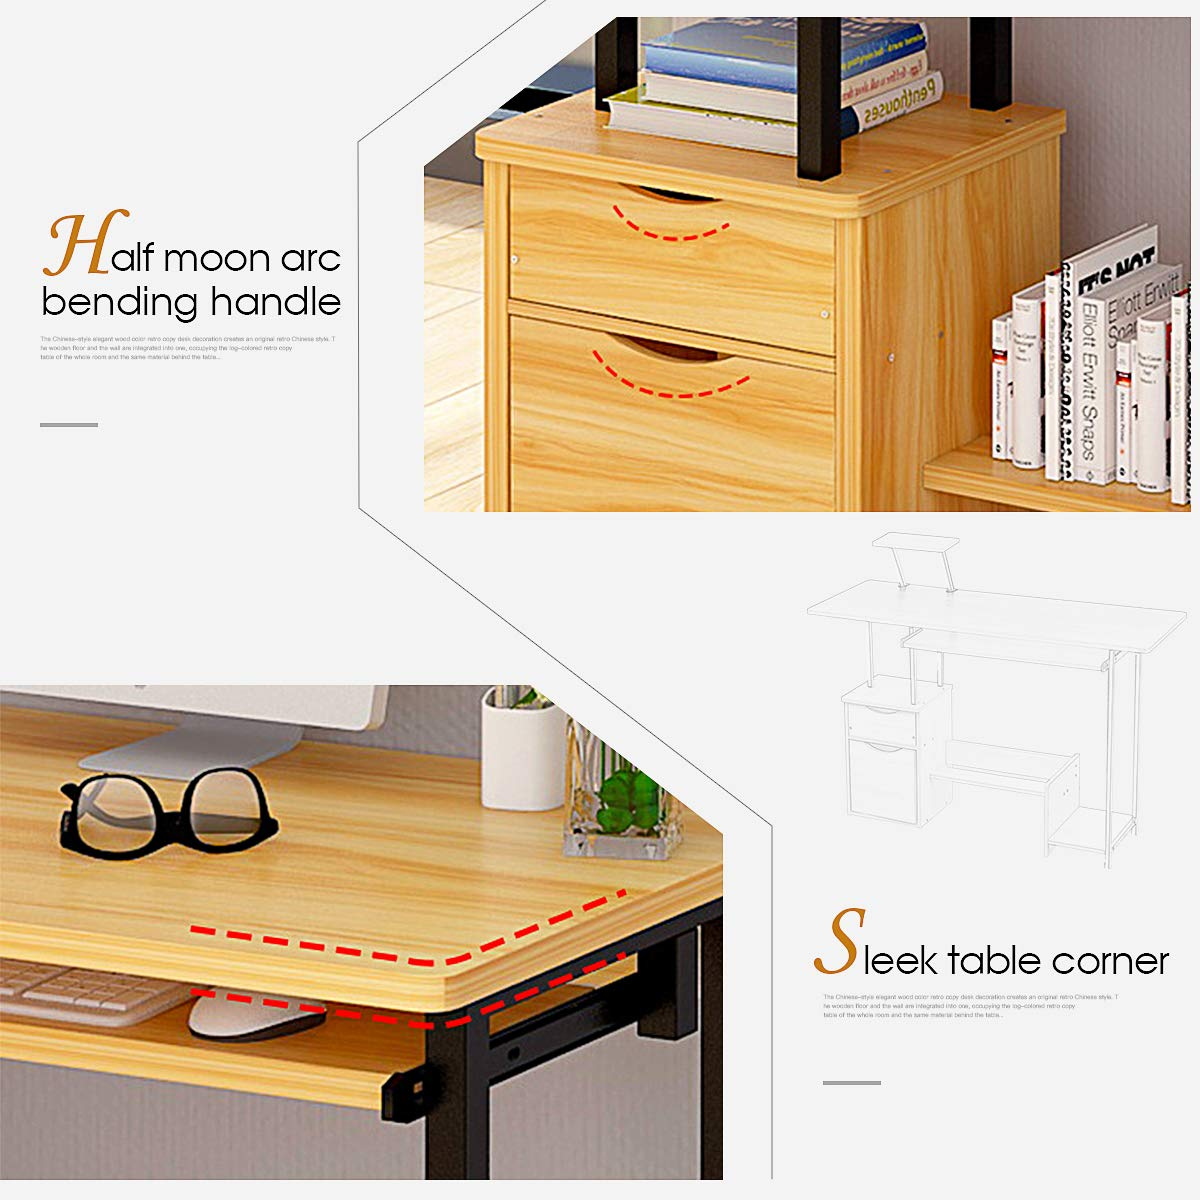 Computer Desk,Laptop Desk Modern Style Writing Study Table Home Office Desk Compact Gaming Desk Multipurpose PC Workstation Steel Frame and Bookshelf for Home Office with Keyboard Tray & CPU Holder by Suninhome (Image #3)